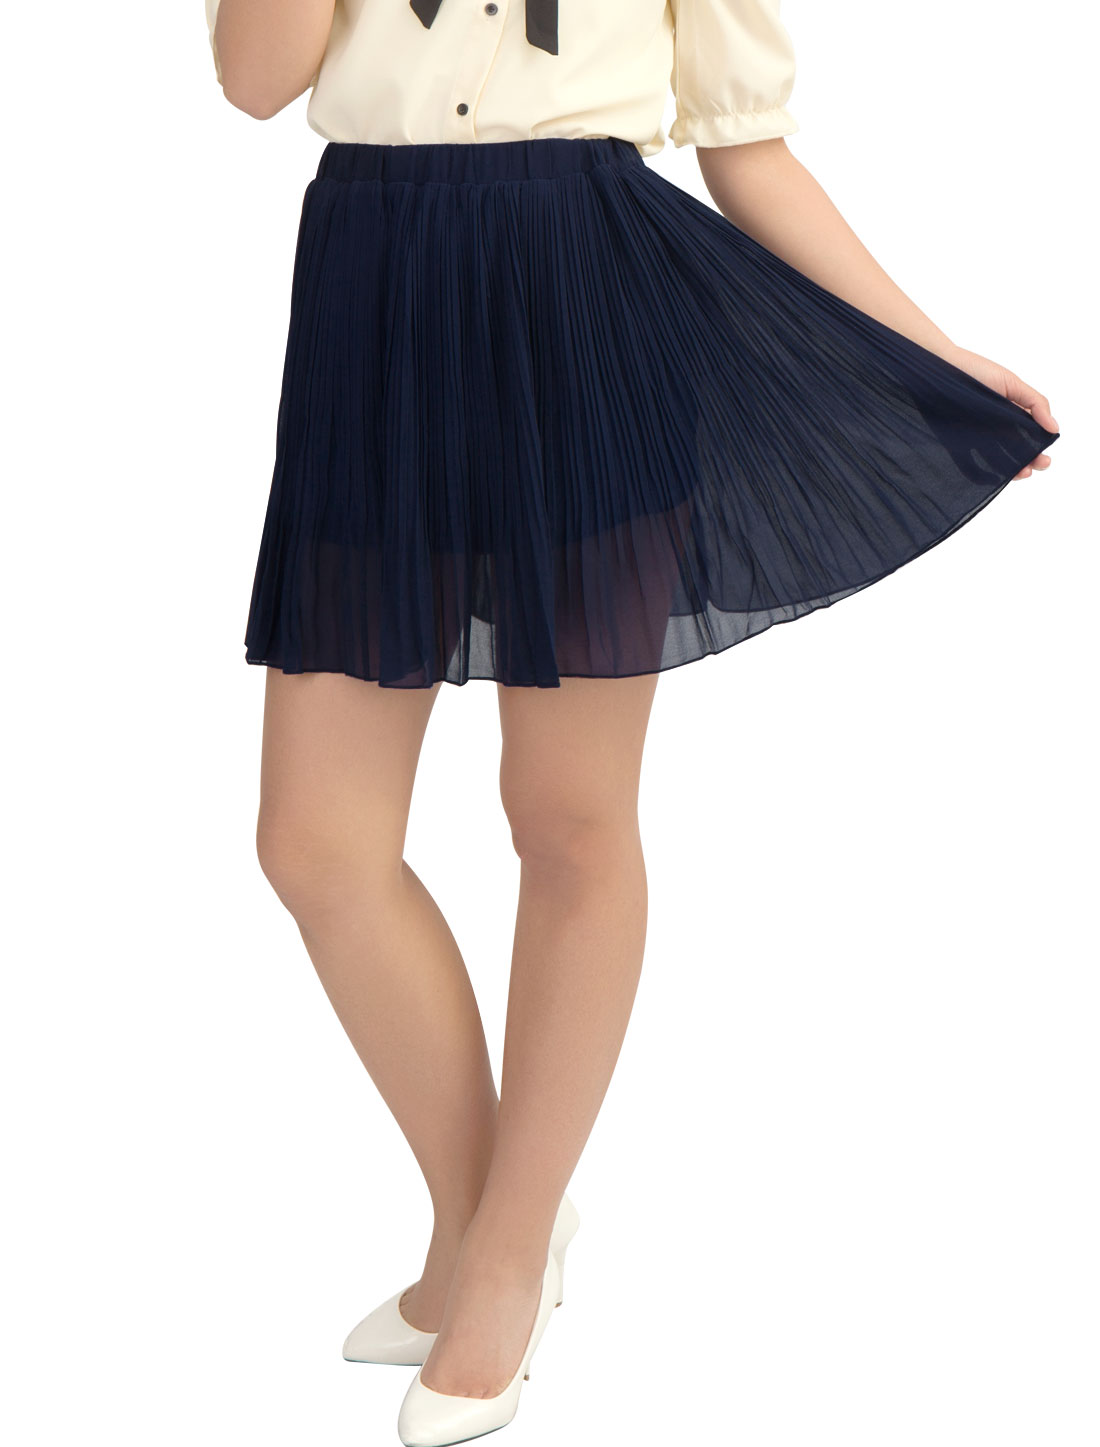 Solid Navy Blue Elastic Waist Pleated Mini Skirt M for Lady